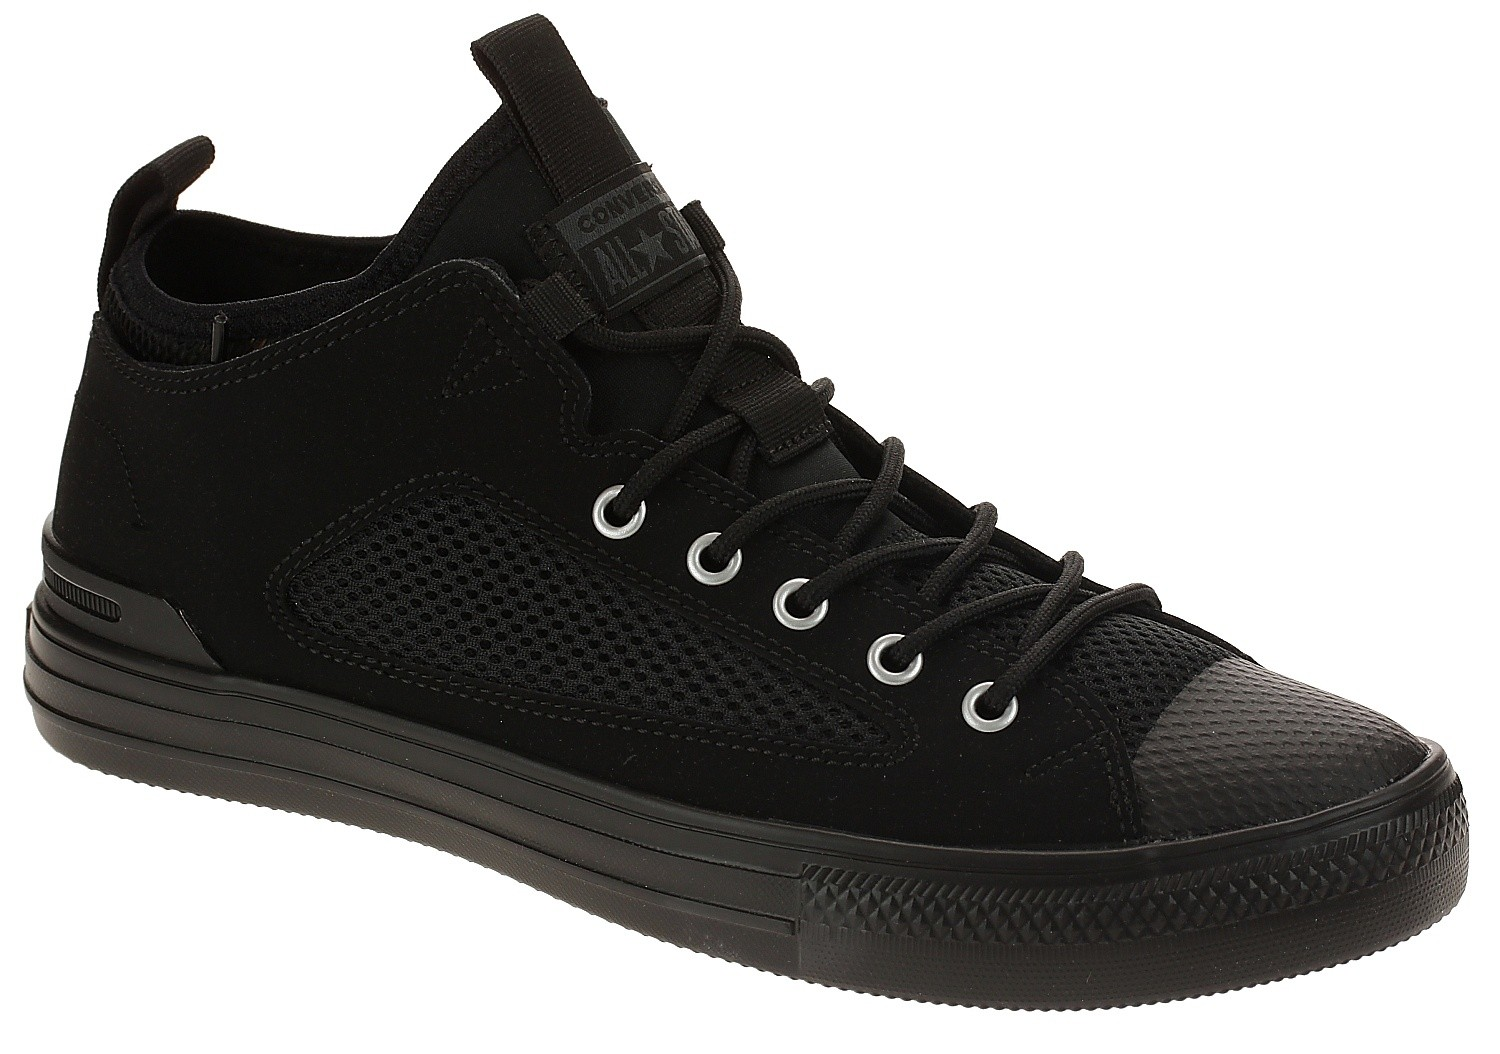 auricular lluvia damnificados  shoes Converse Chuck Taylor All Star Ultra OX - 161477/Black/Black/Field  Surplus - snowboard-online.eu